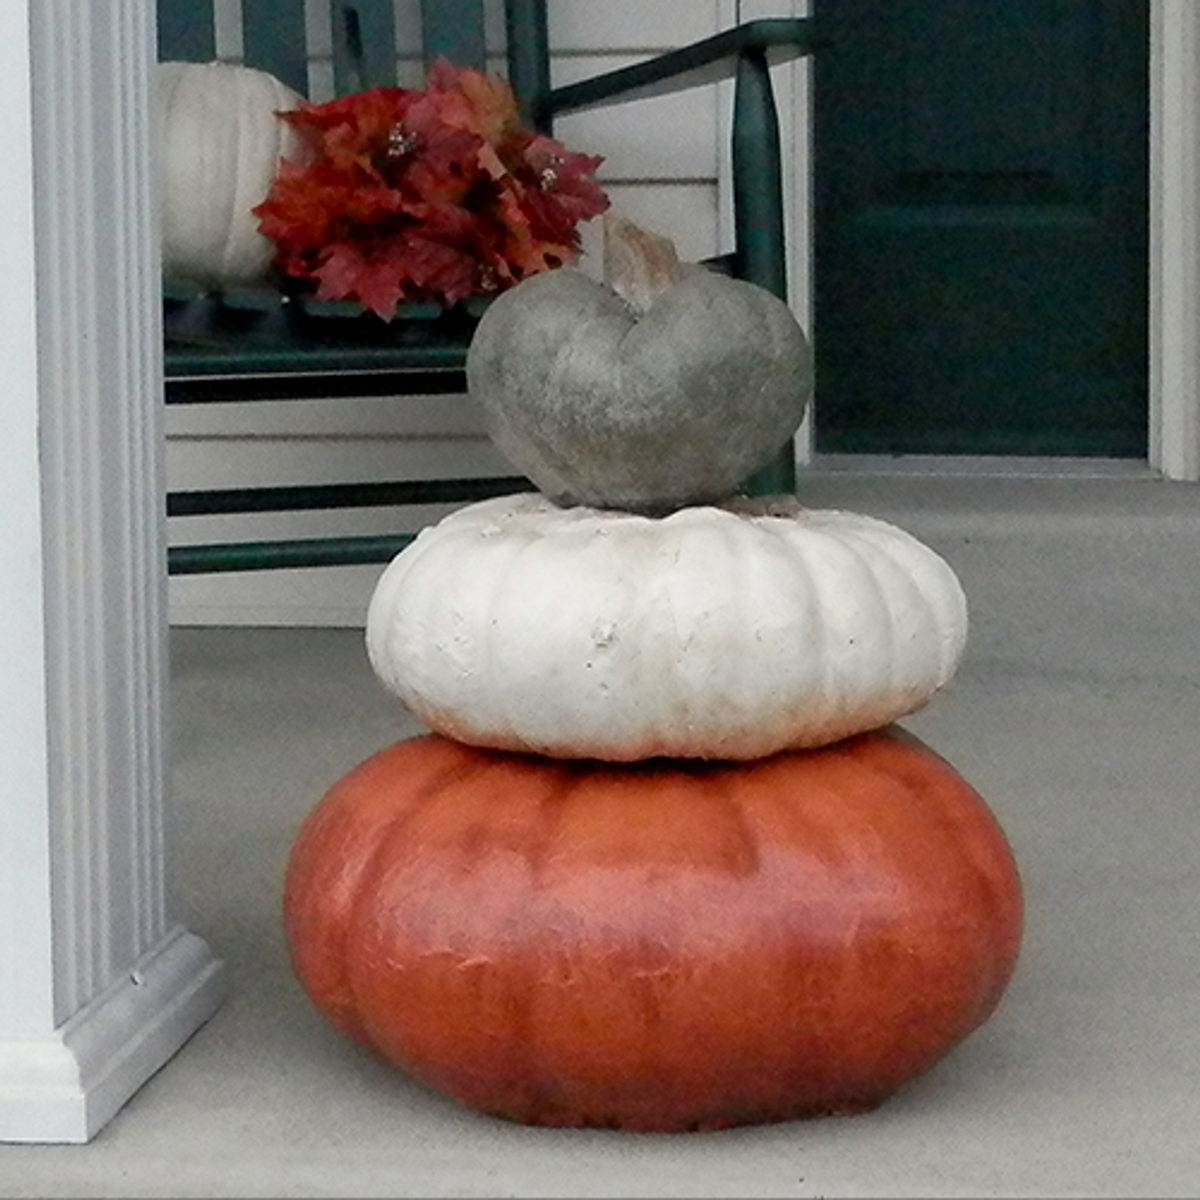 Fall Decoration, autumn decor, stone sculpture, Halloween, Outdoor, Jack O'lantern, Stone Planter Planter, Potted mum, Garden statuary Indoor pumpkin stack, Thanksgiving decoration, Pumpkin Planter, Orange pumkin stack, Green Stem